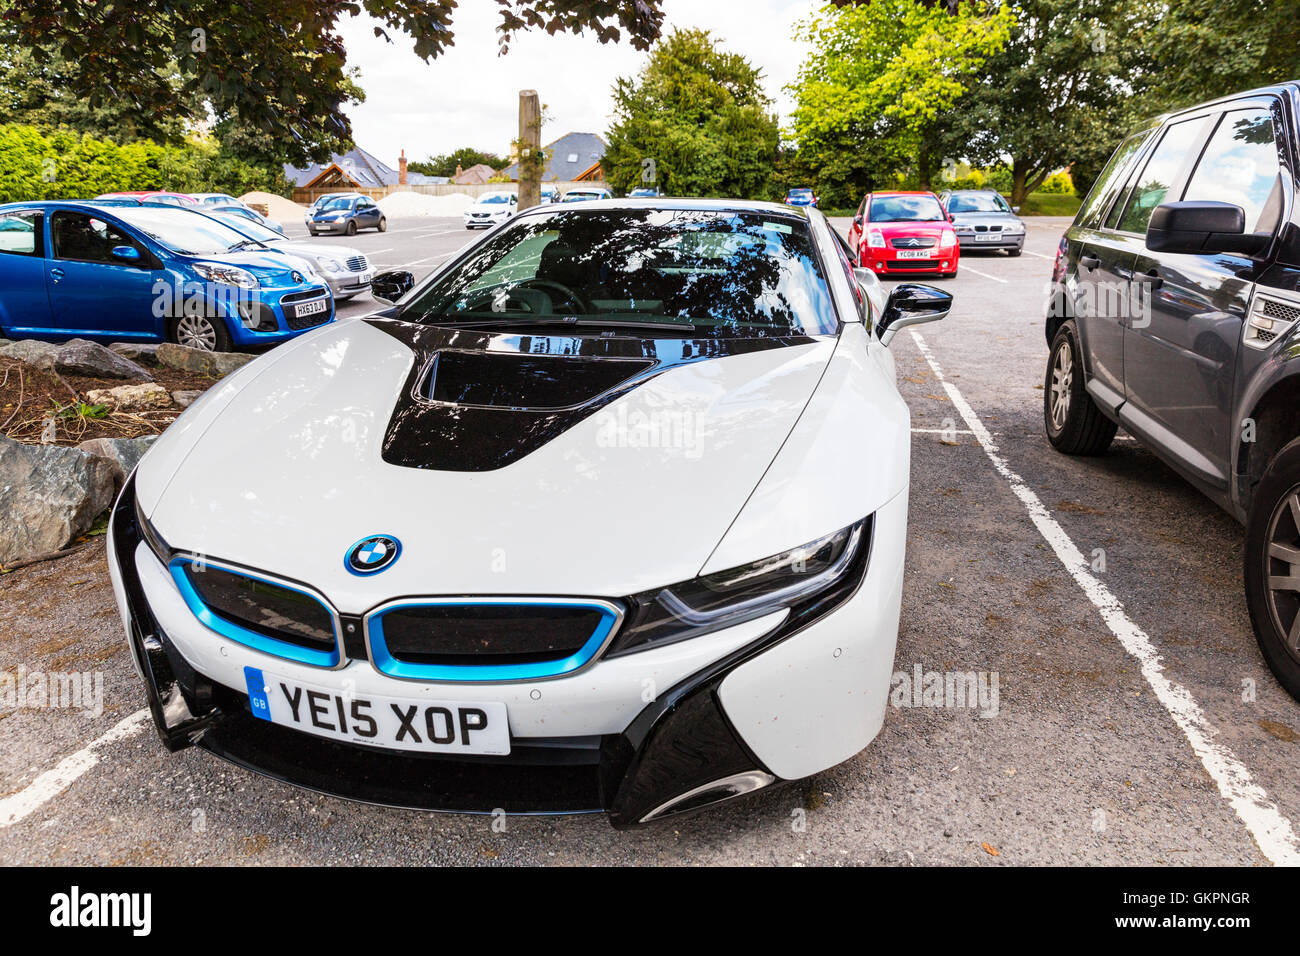 BMW I Sports Car Plugin Hybrid Sports Cars Developed By BMW - Economical sports cars